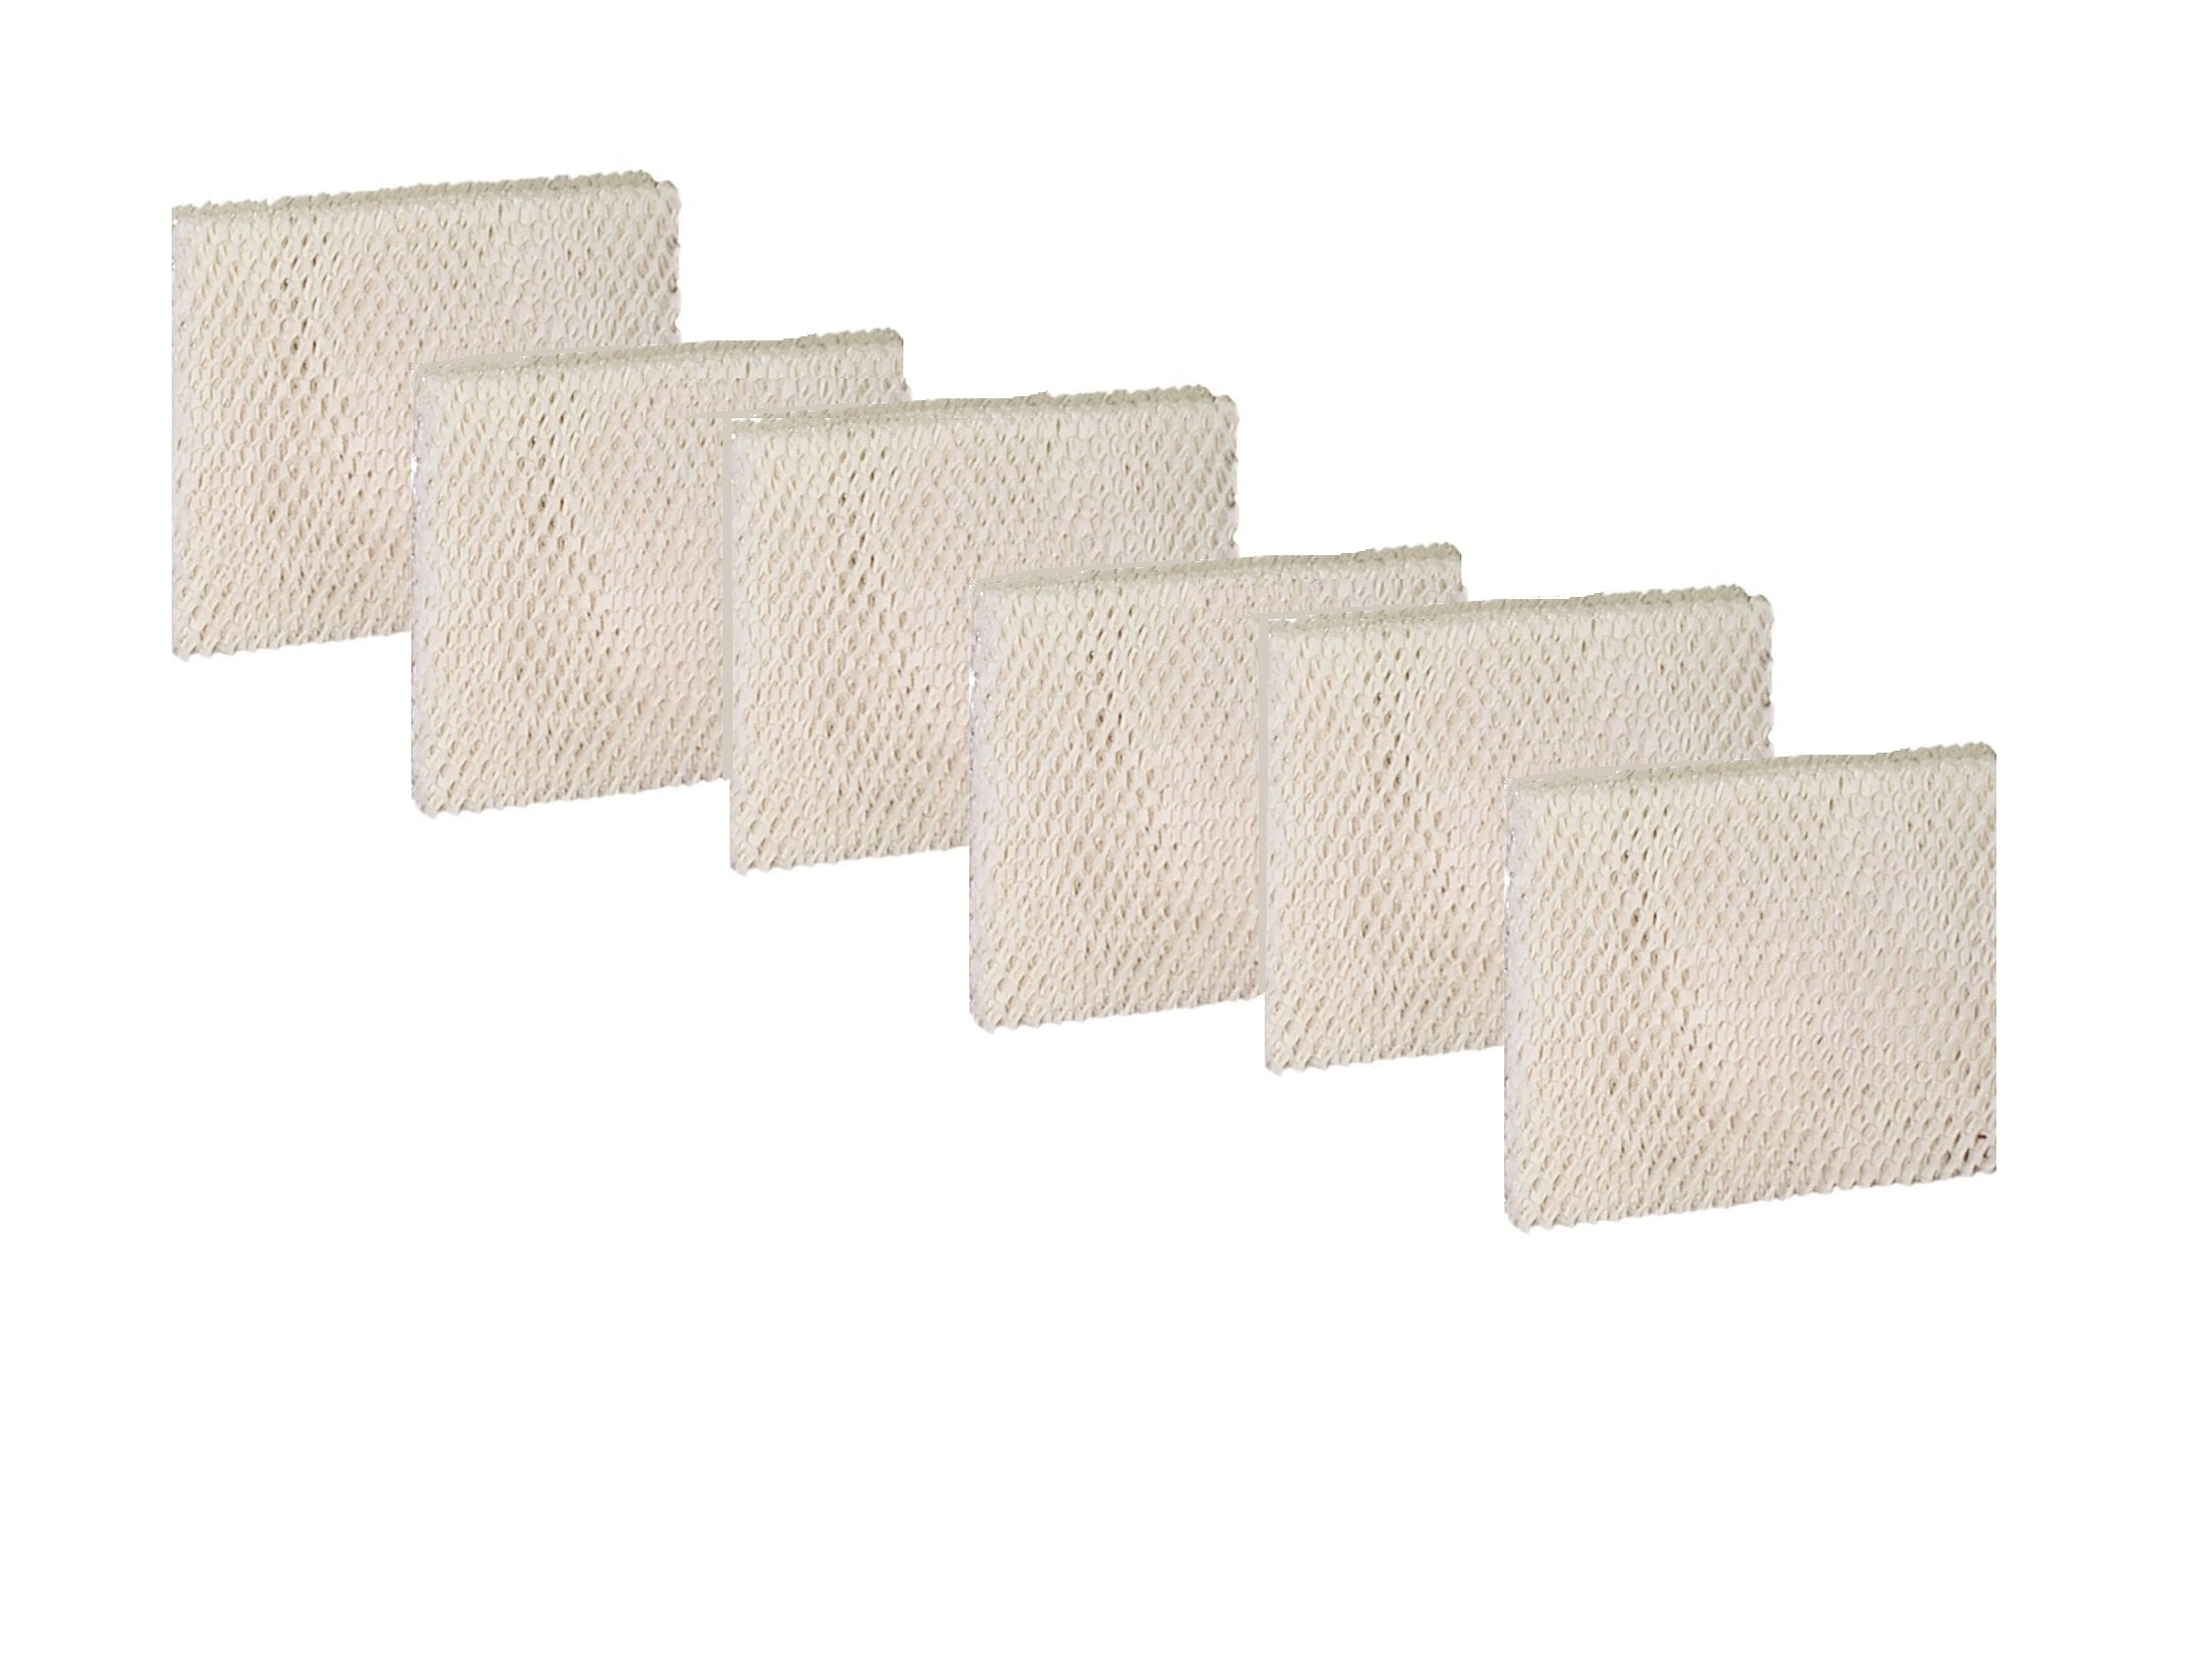 HWF23CS Holmes Humidifier Replacement Filter by Tier1 (6 Pack) TIER1_HMF1600_6_PACK